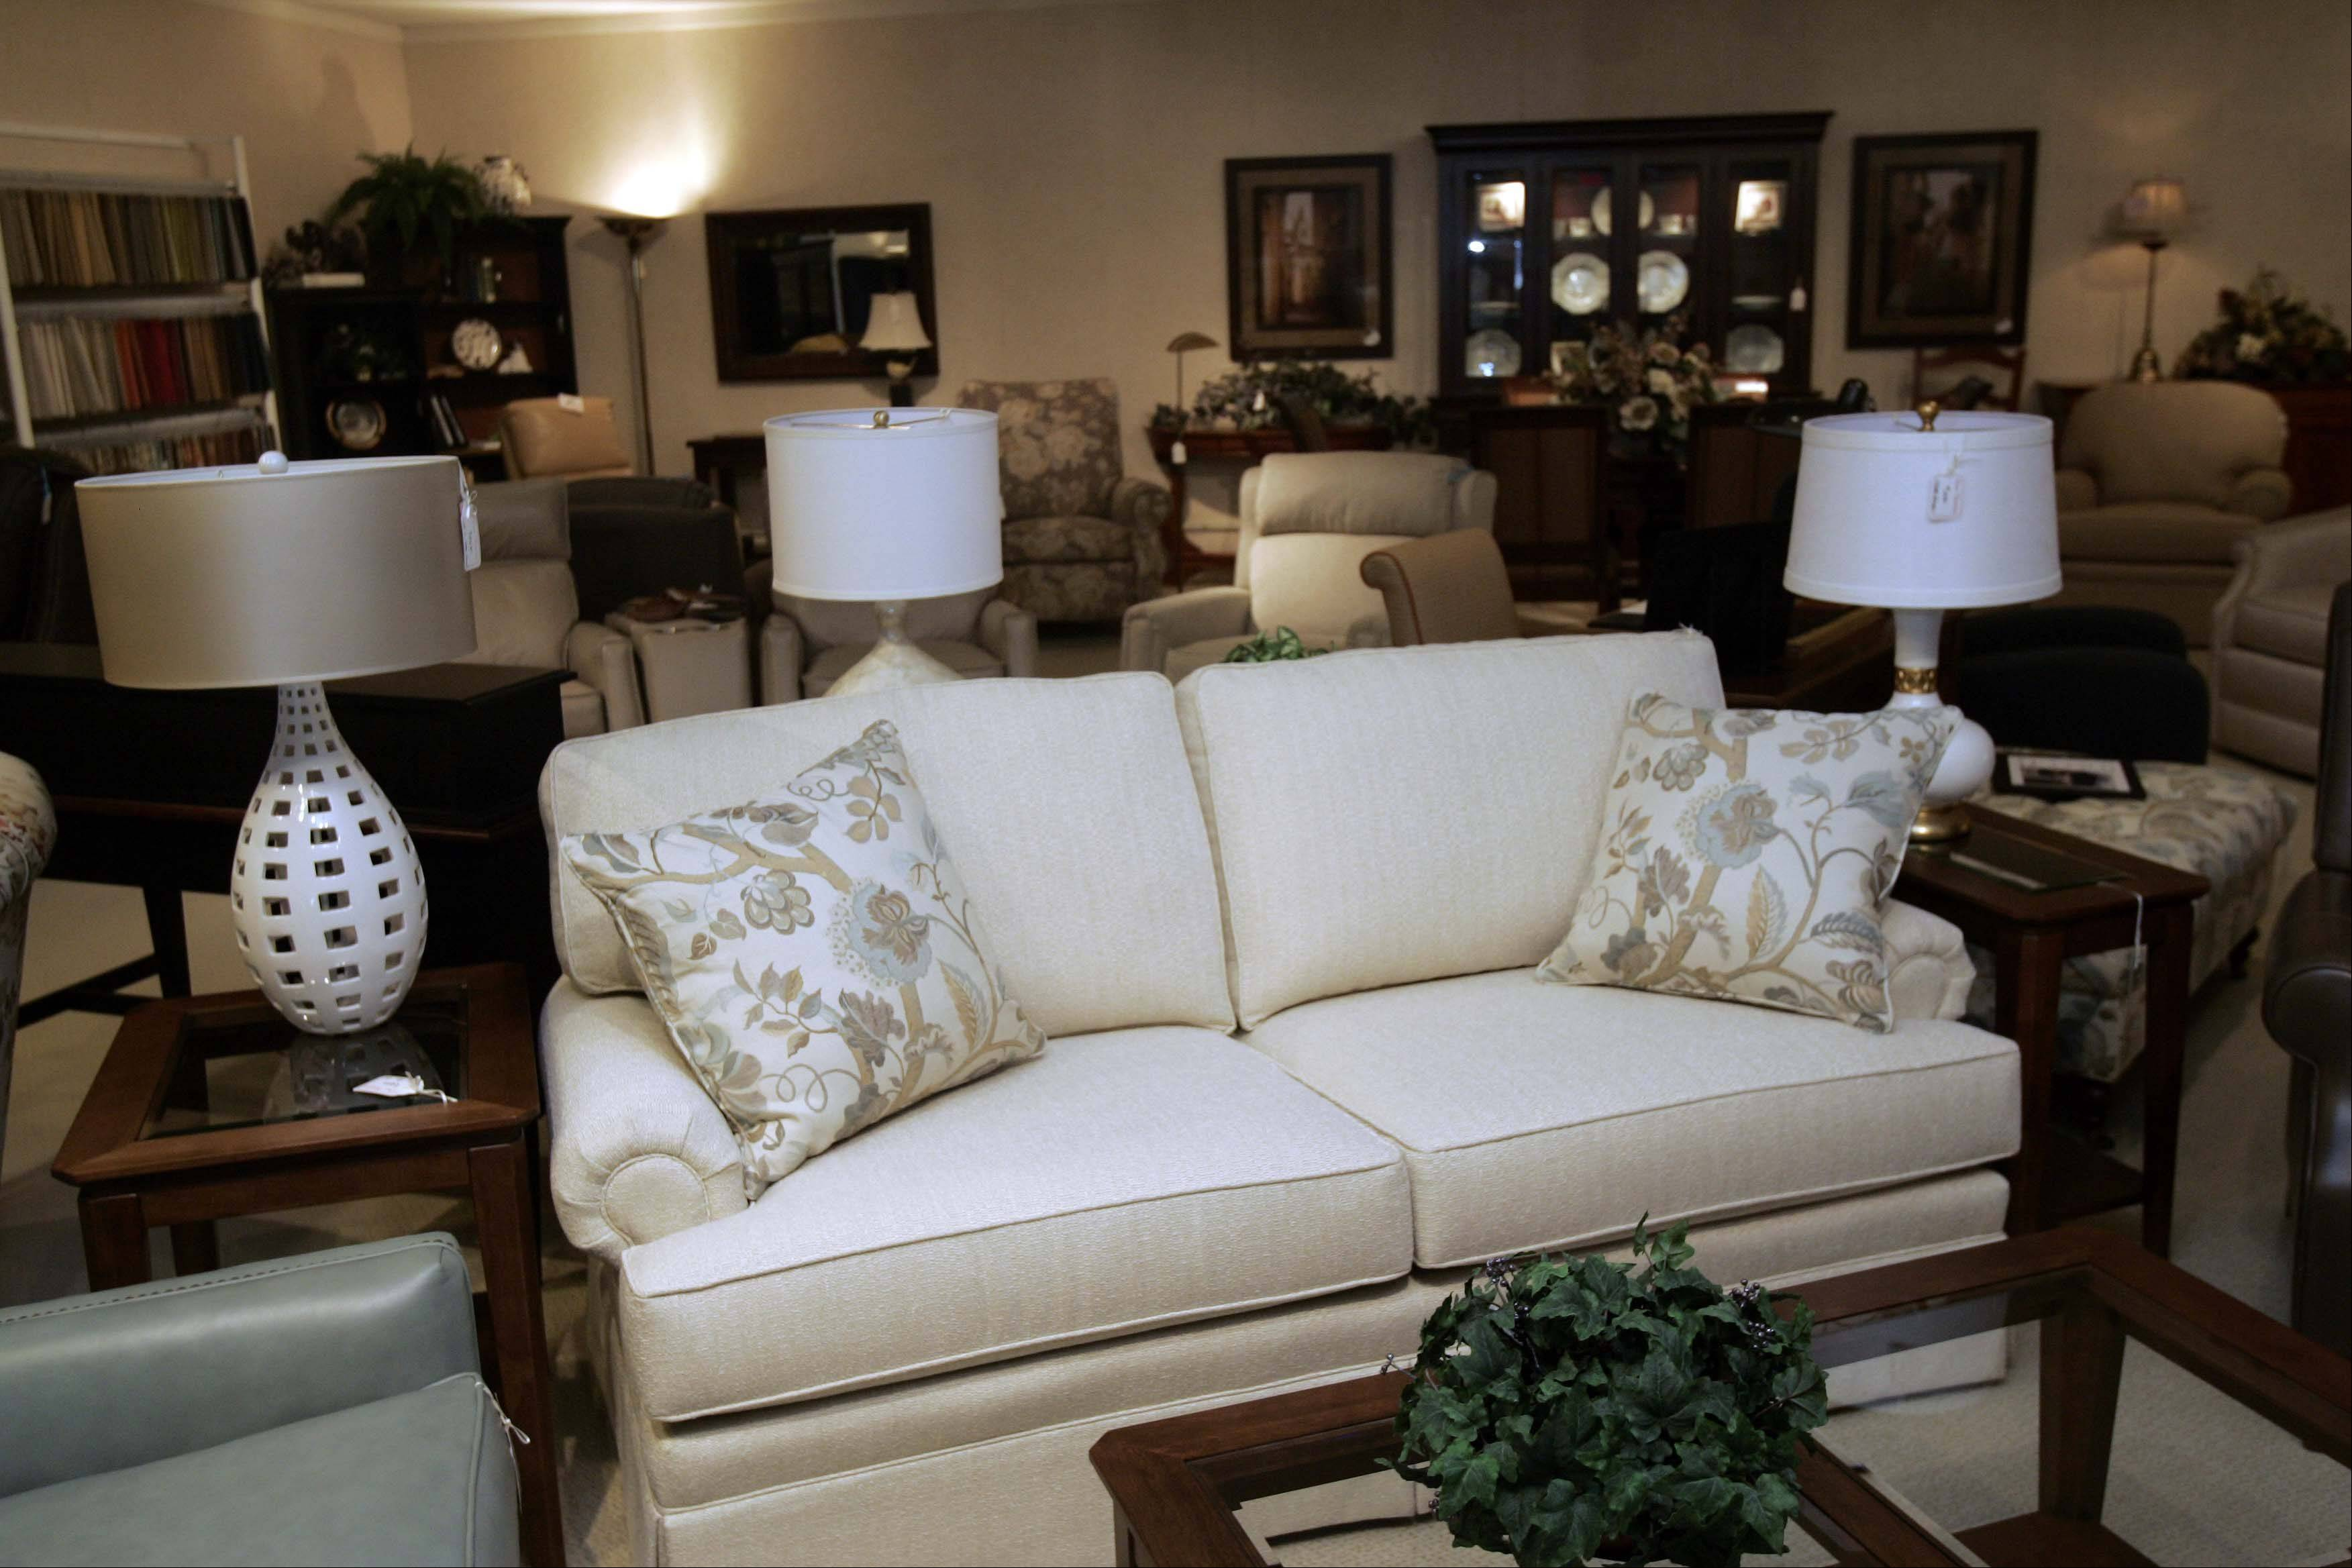 Dow Furniture in North Aurora offers some smaller and compact furniture for those looking to downsize.